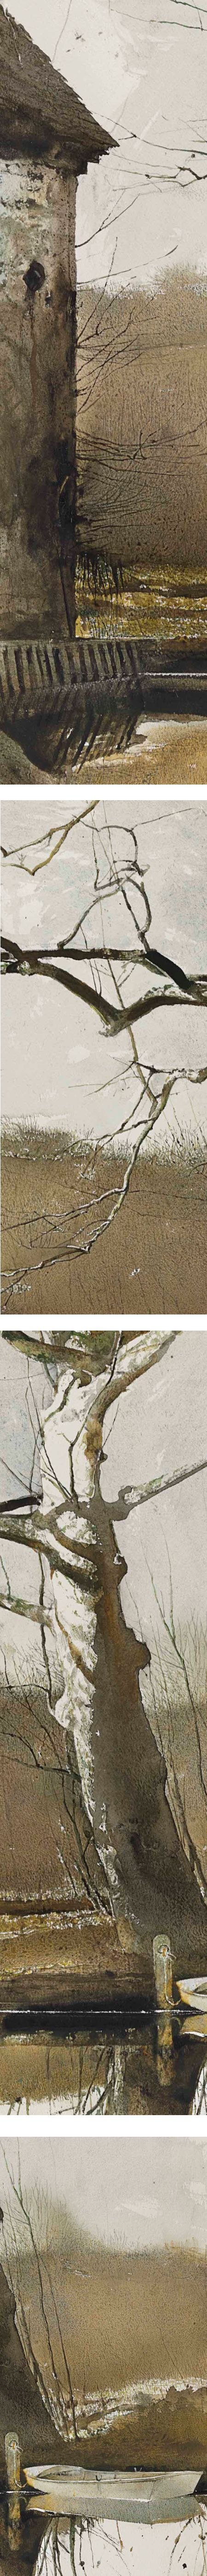 Flat Boat, Andrew Wyeth, watercolor and drybrush, details